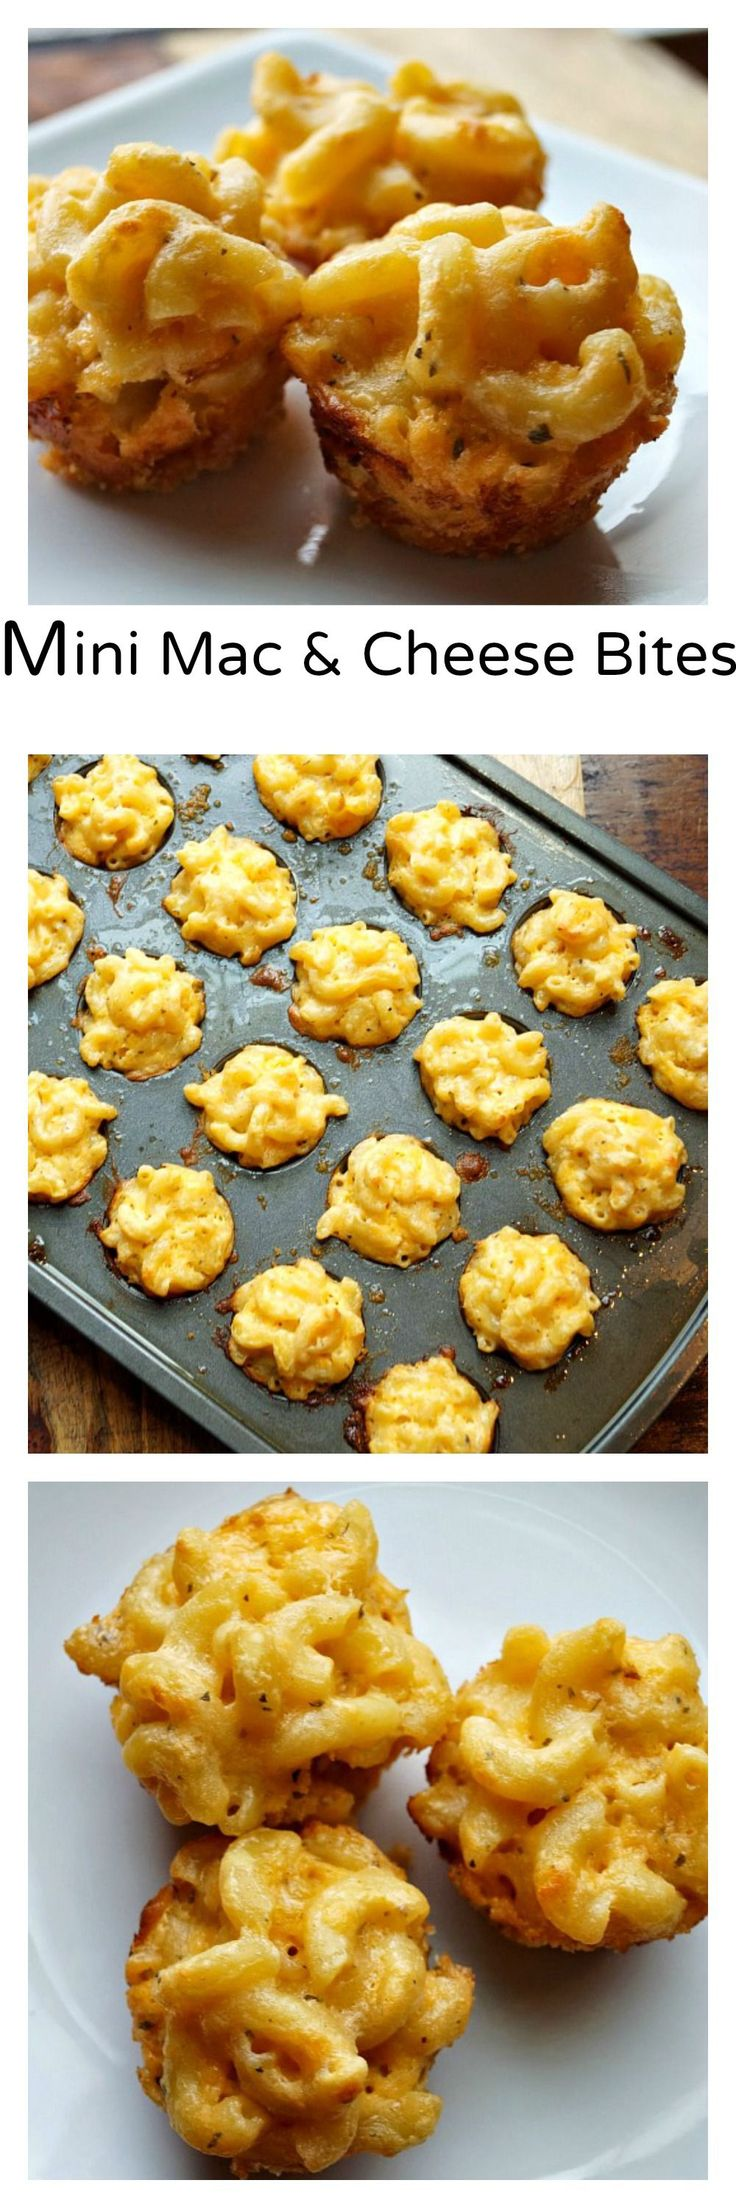 Mini Macaroni and Cheese Bites, A great tailgating food! (superbowl snacks for kids football season)